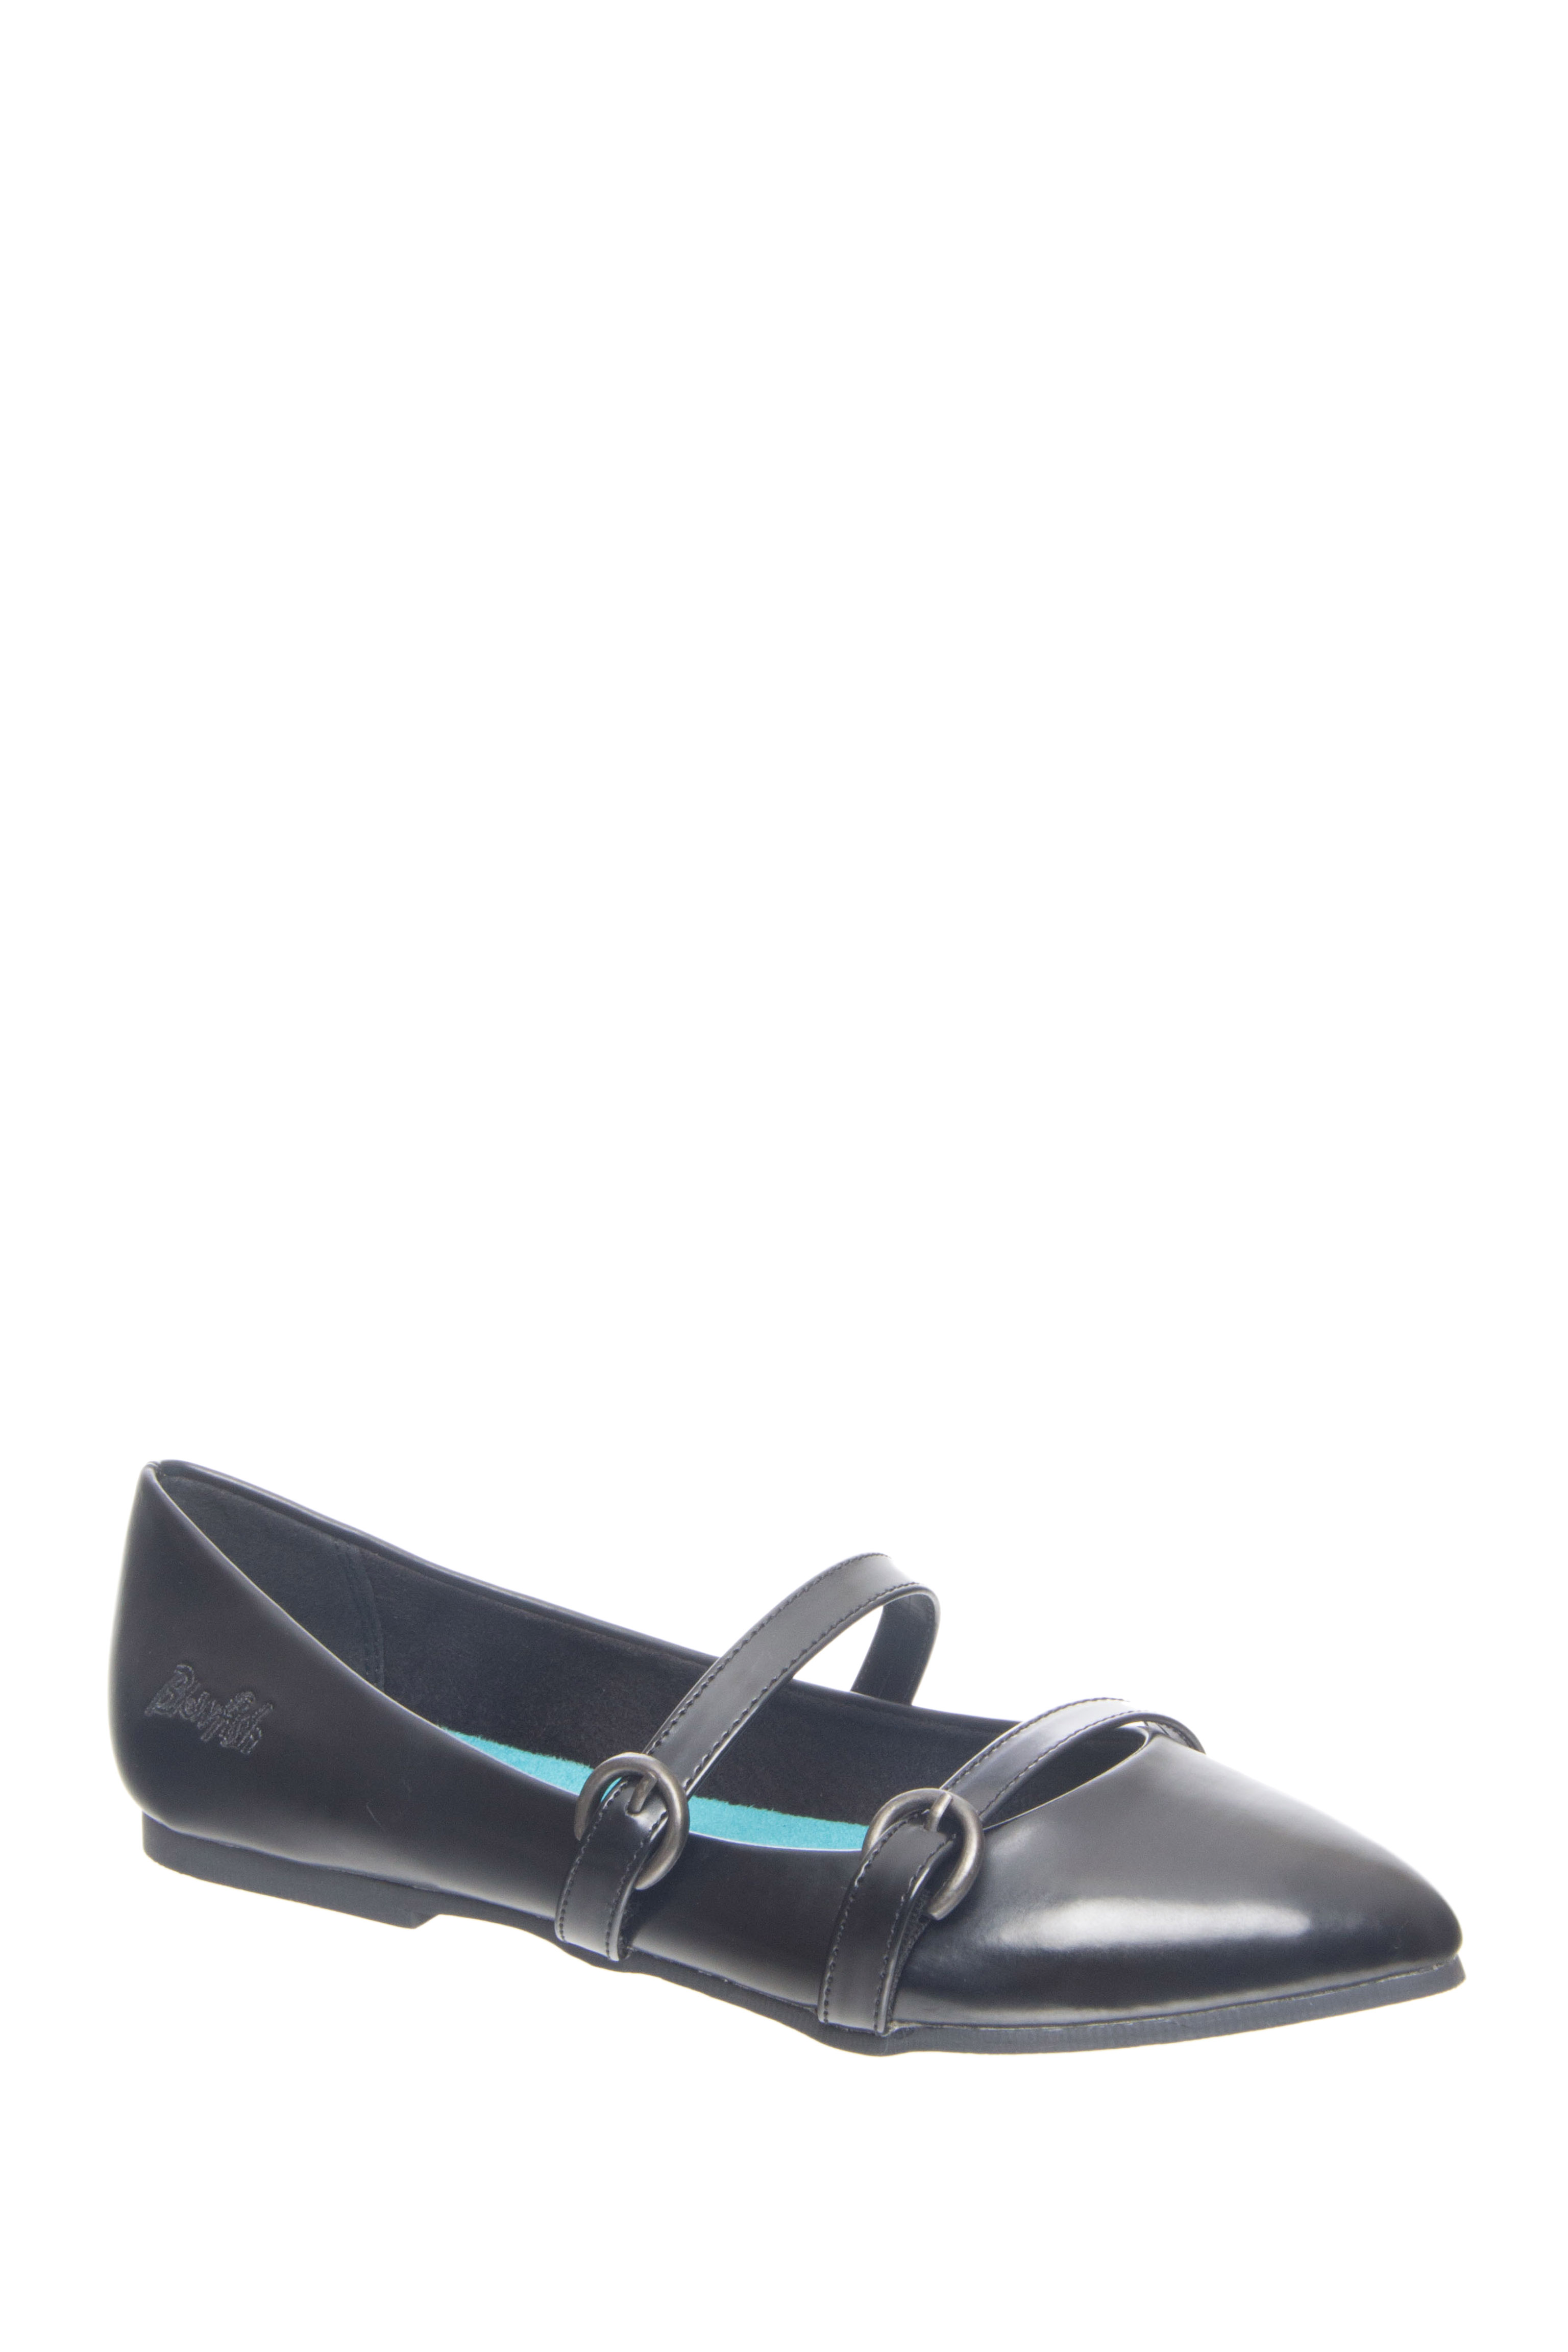 Blowfish Zaza Pointed-Toe Flats - Black